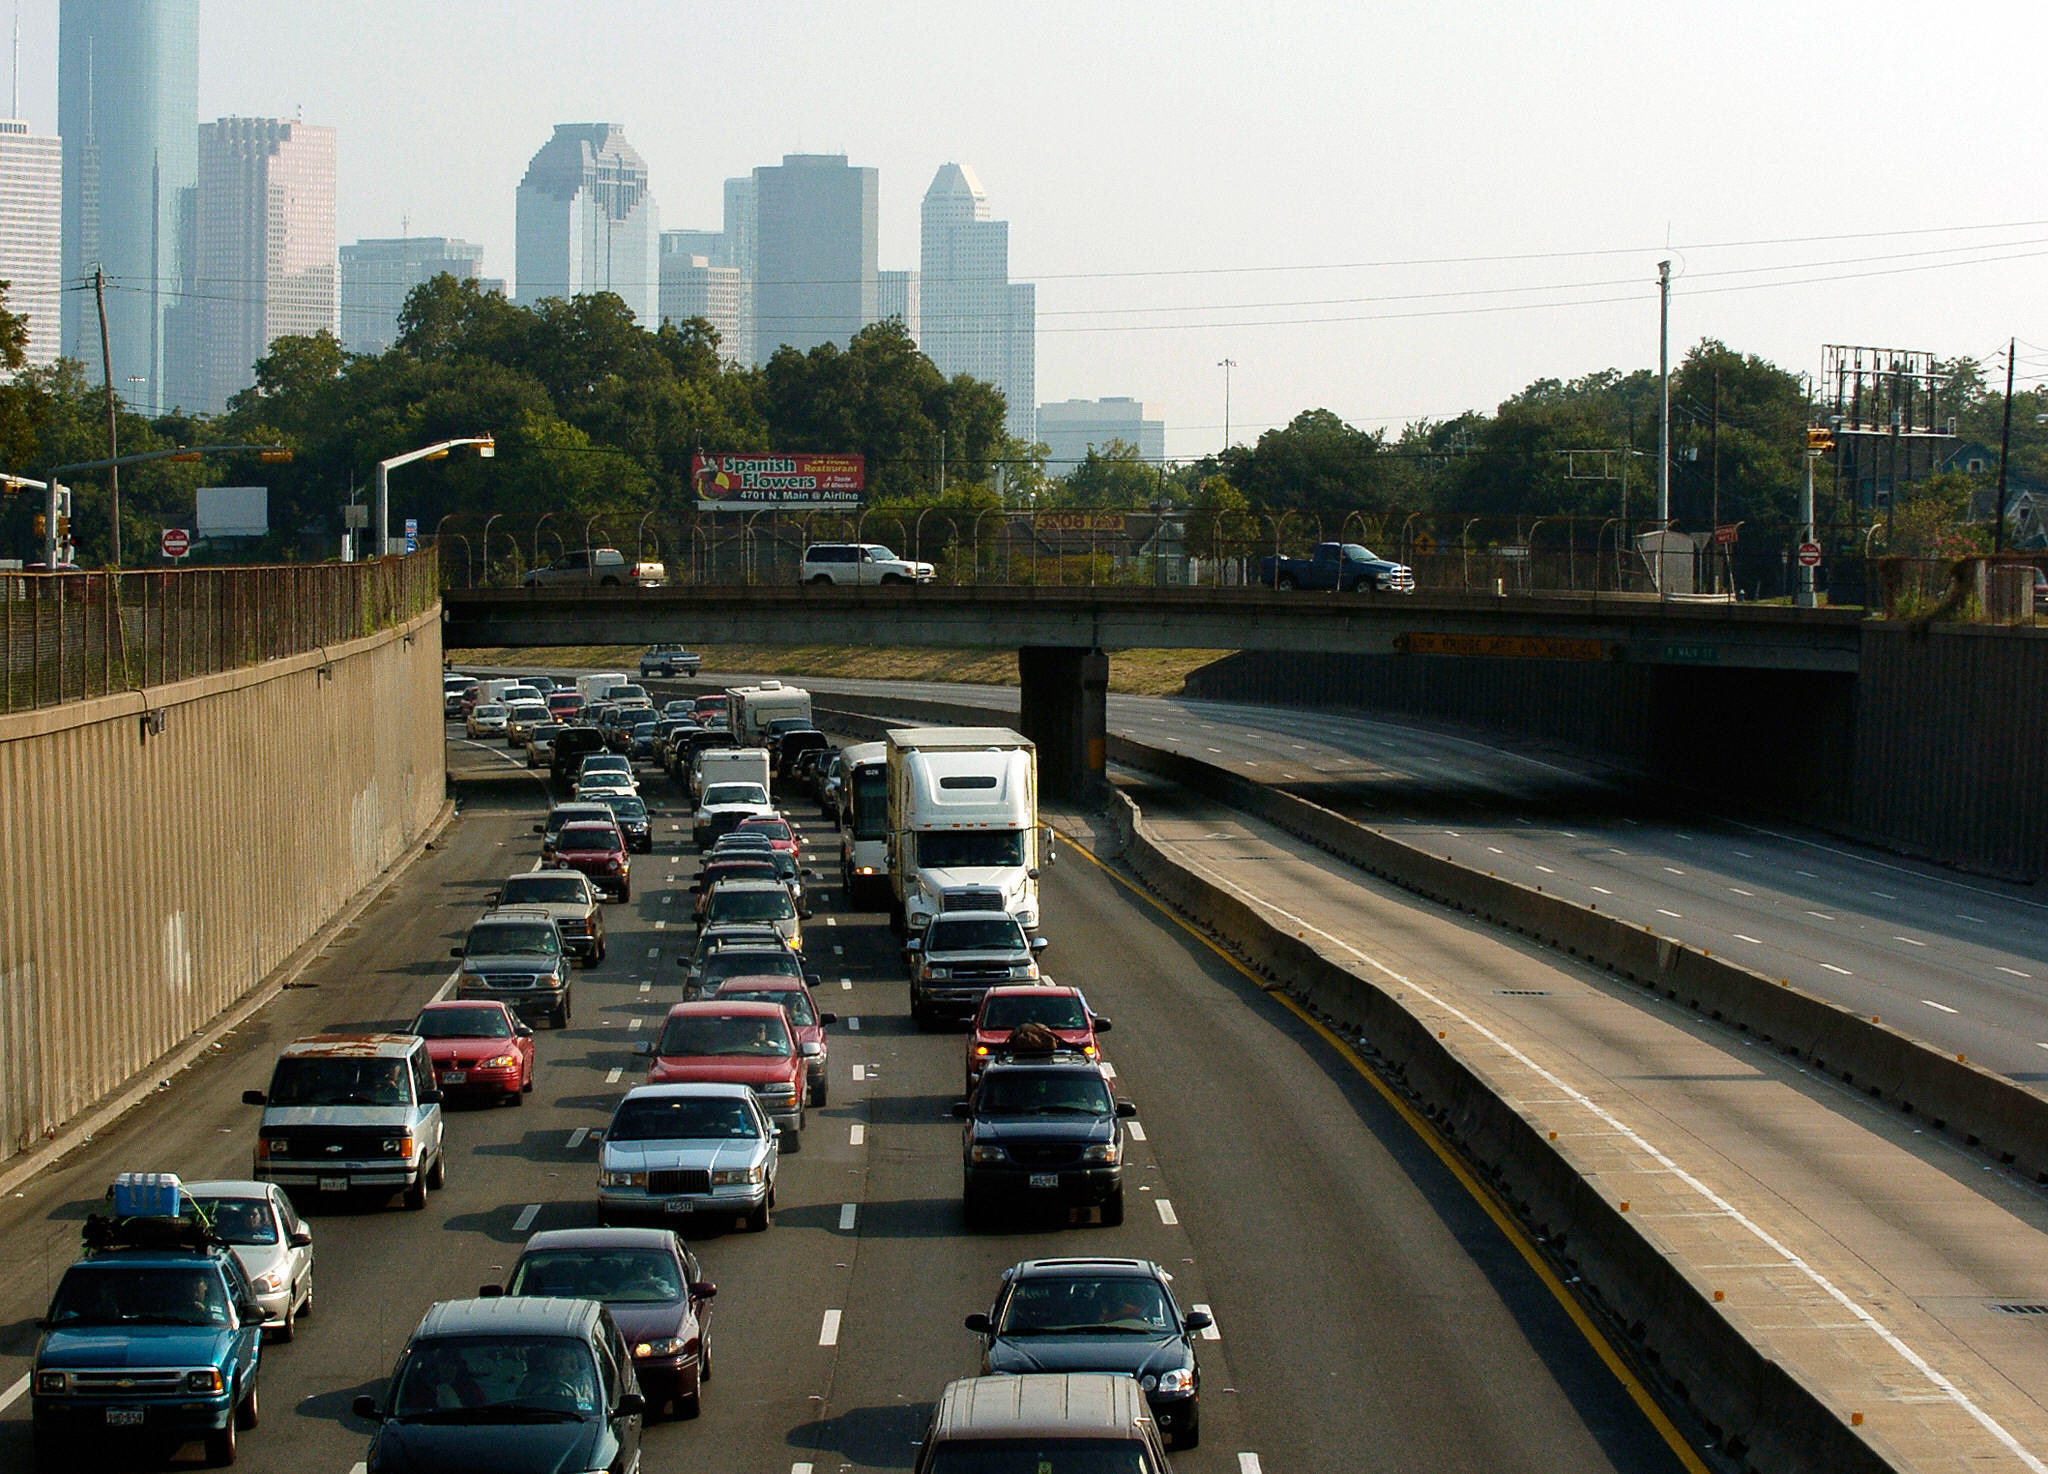 With the downtown skyline in the background cars jam the northbound lanes of I-45 in Houston, Texas. Credit: Stan Honda/AFP via Getty Images